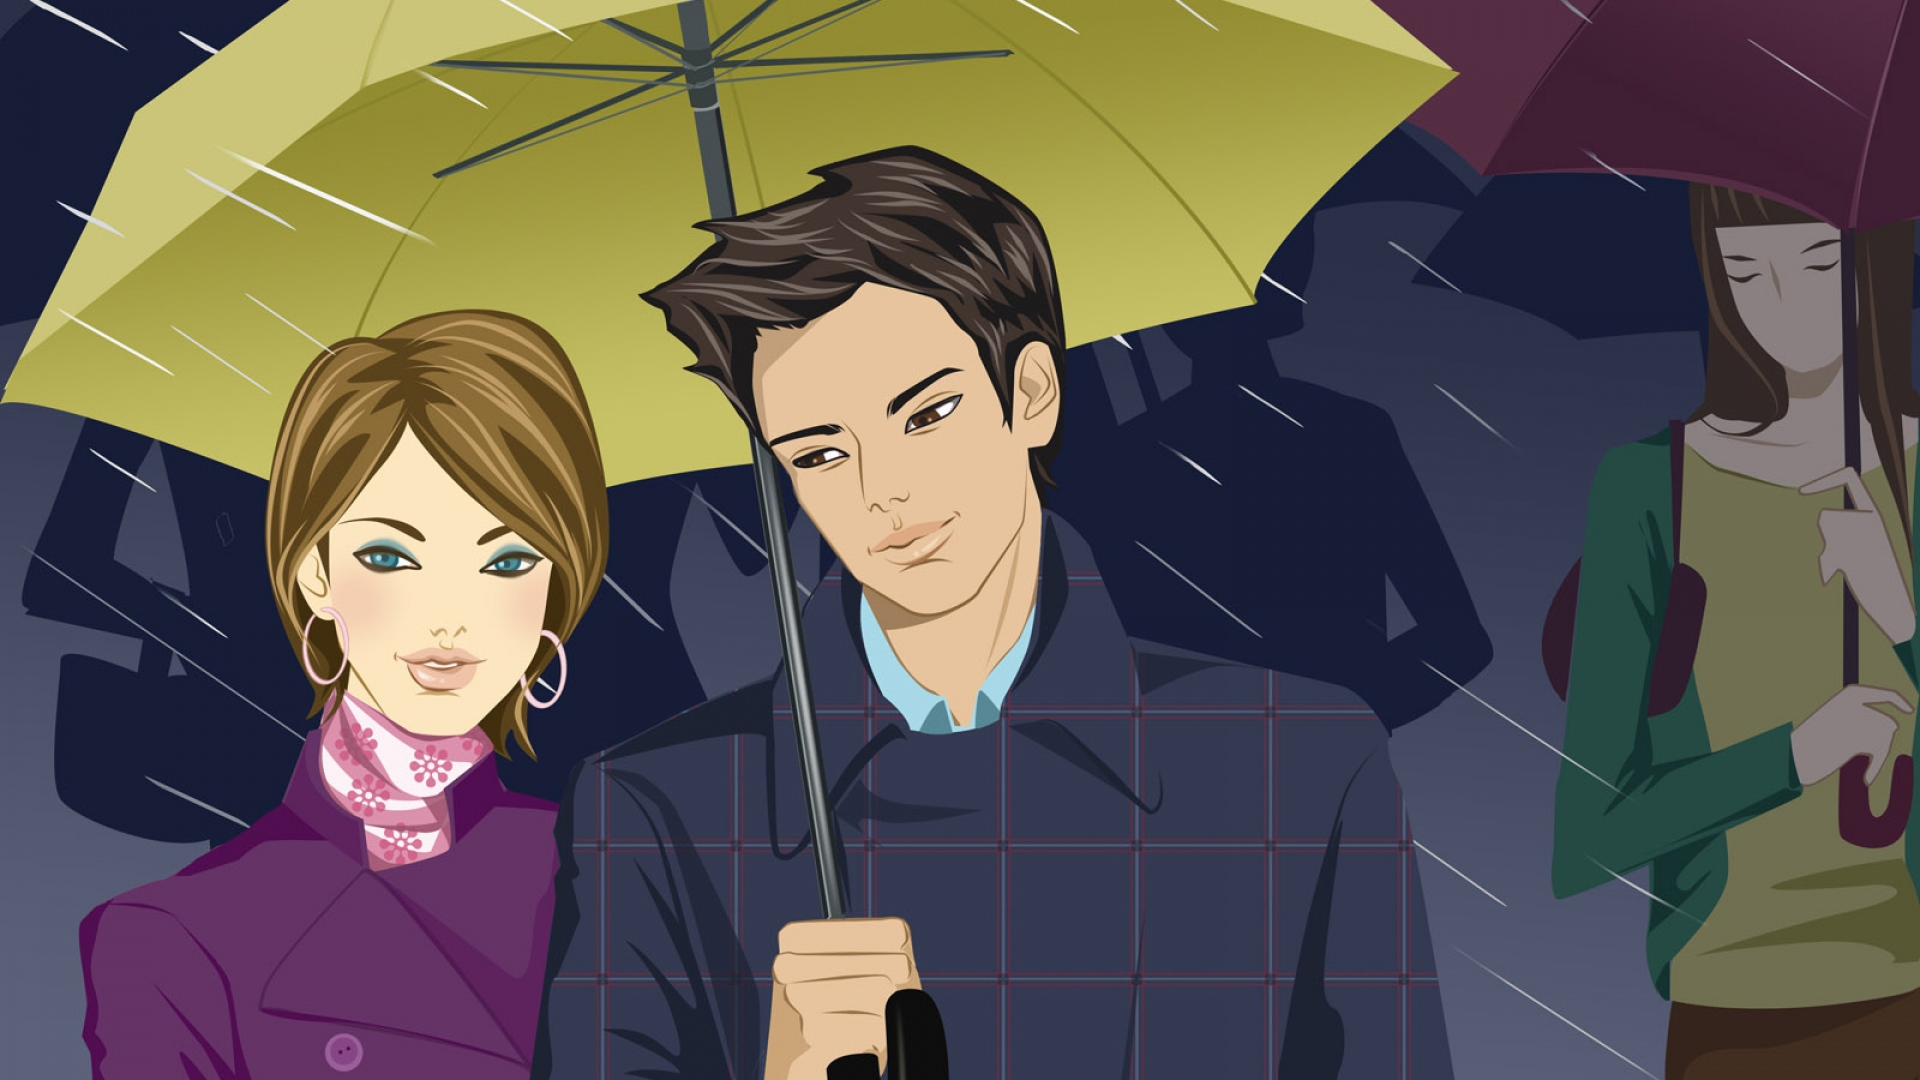 Wallpaper Young Couple Heavy Rain Together Shadow Drawn   Love 1920x1080